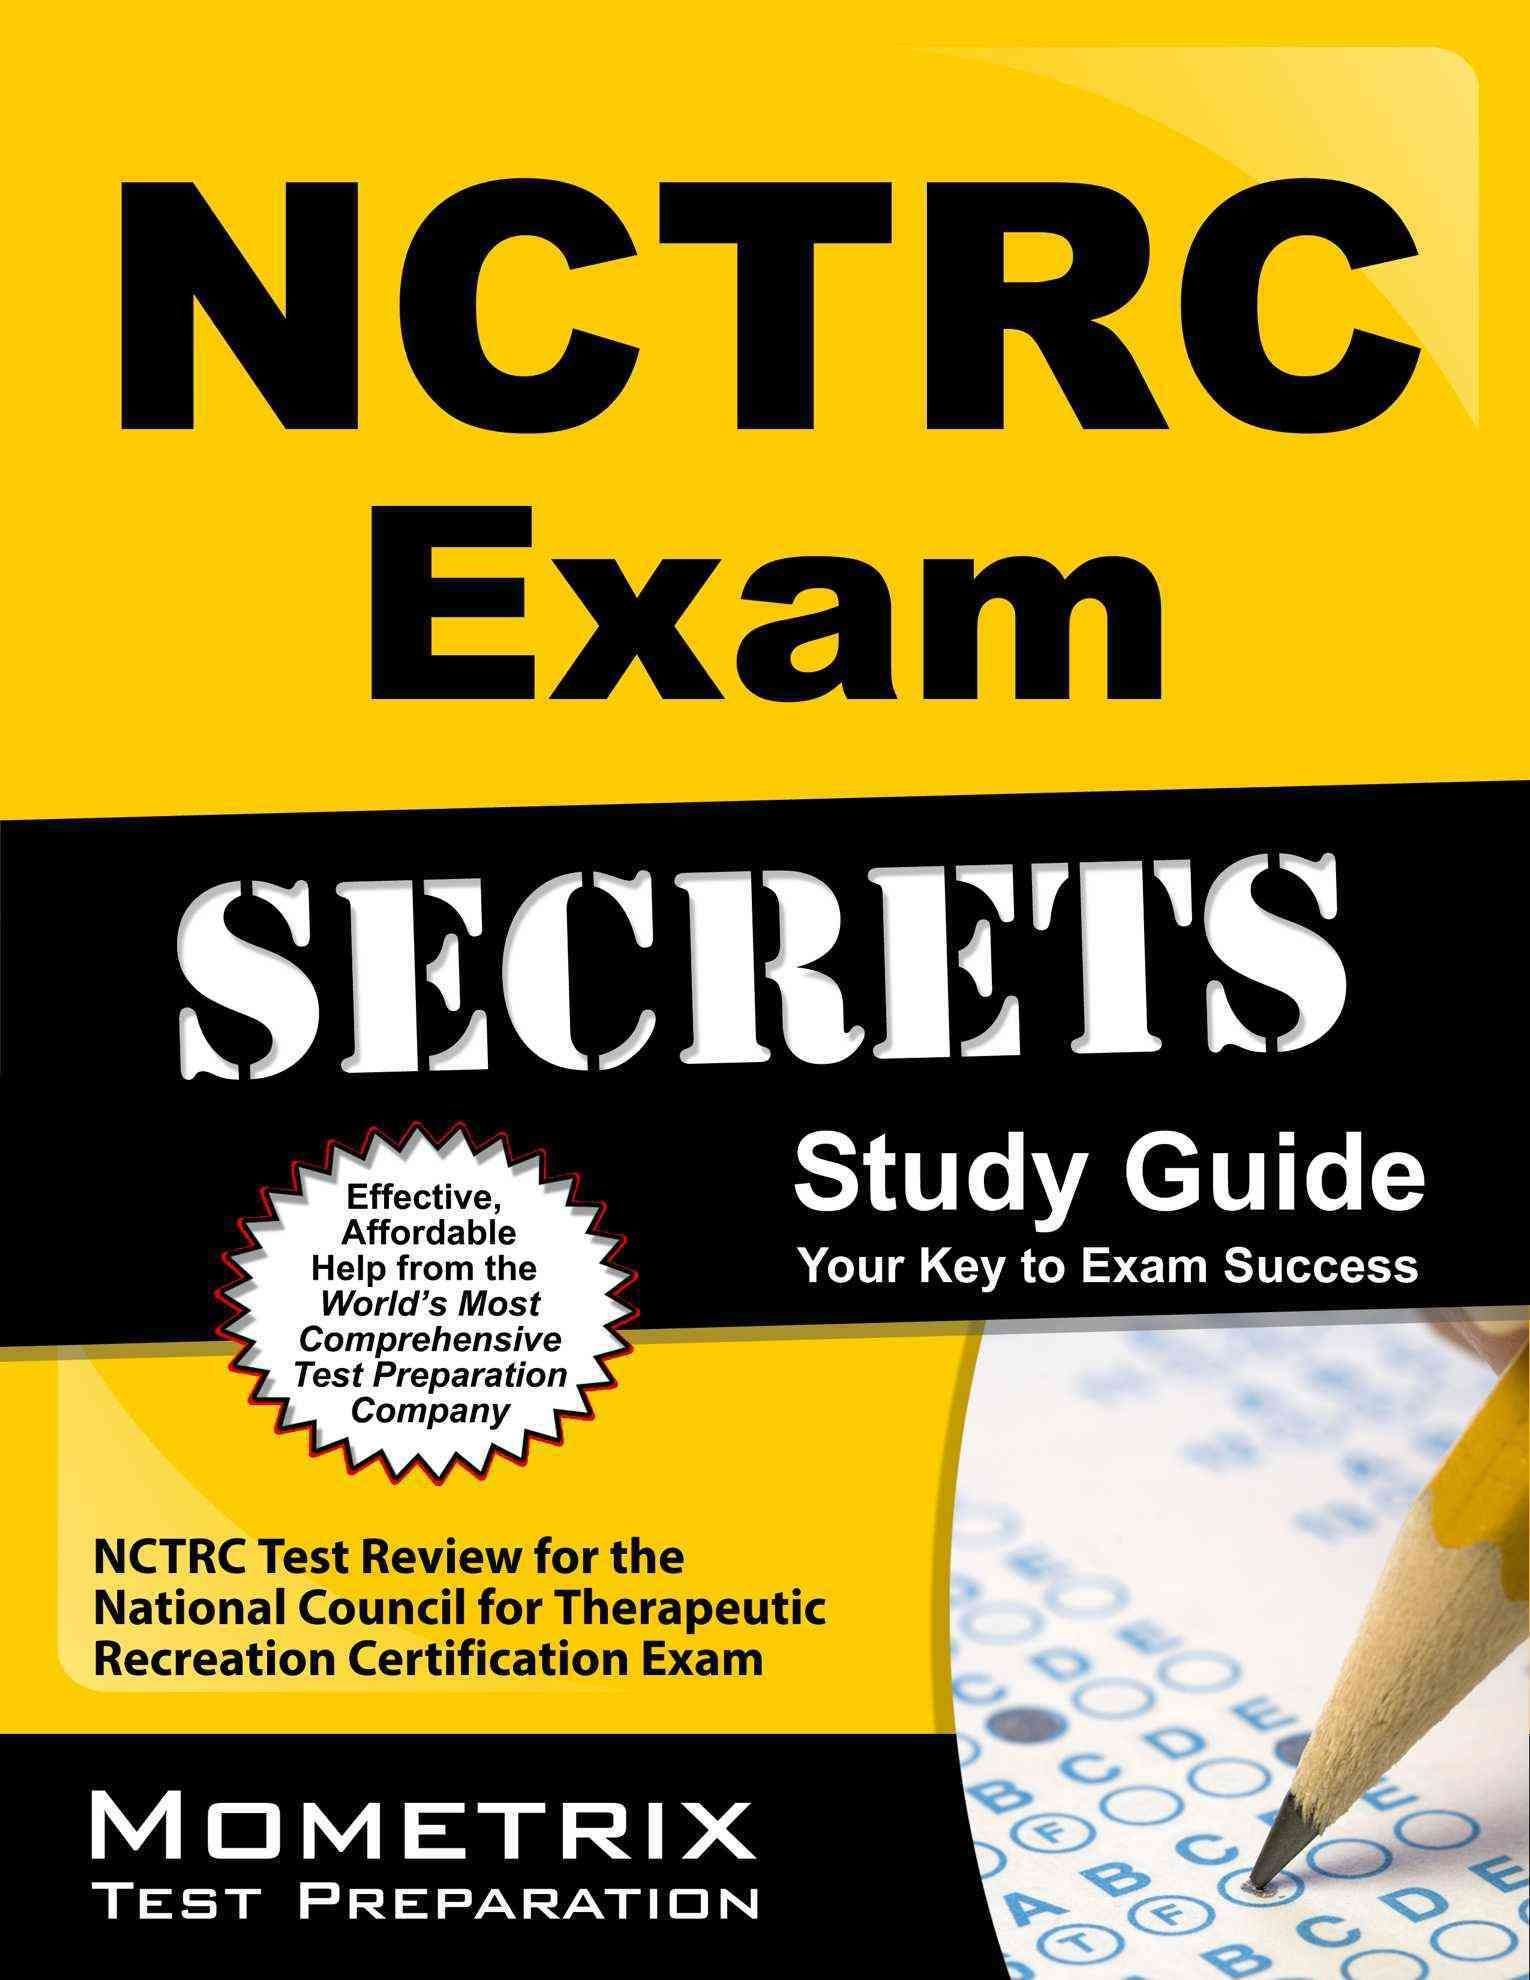 Nctrc Exam Secrets Study Guide Practice Review For The National